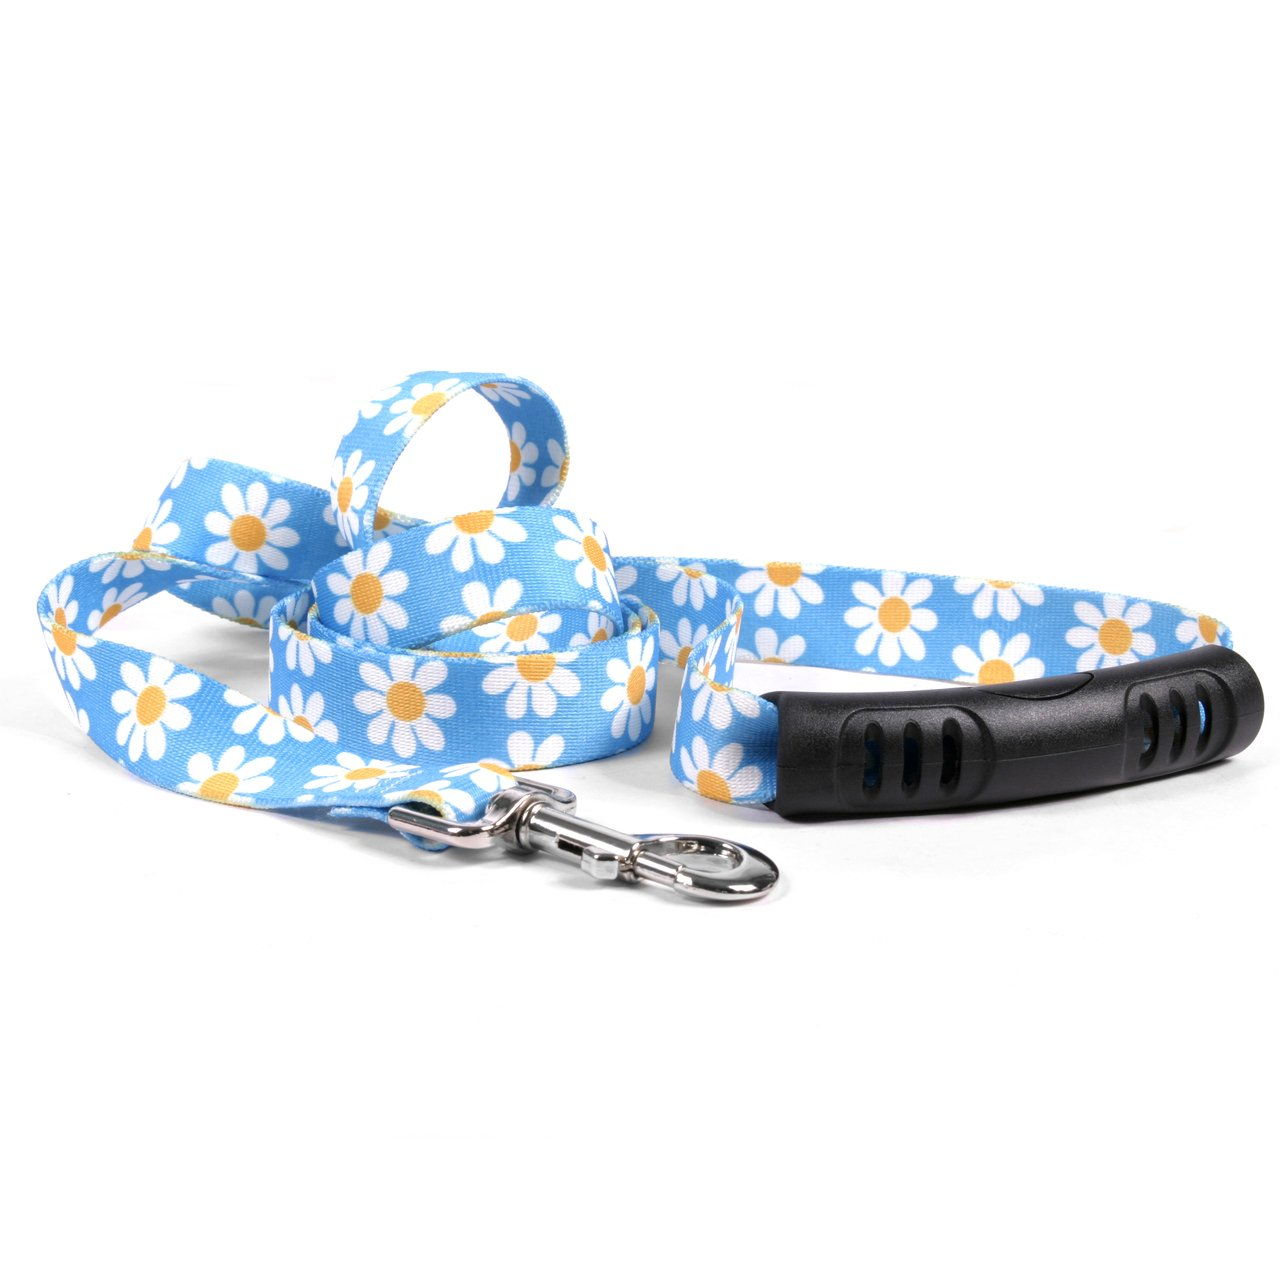 Yellow Dog Design Blue Daisy Ez-Grip Dog Leash With Comfort Handle 1'' Wide And 5' (60'') Long, Large